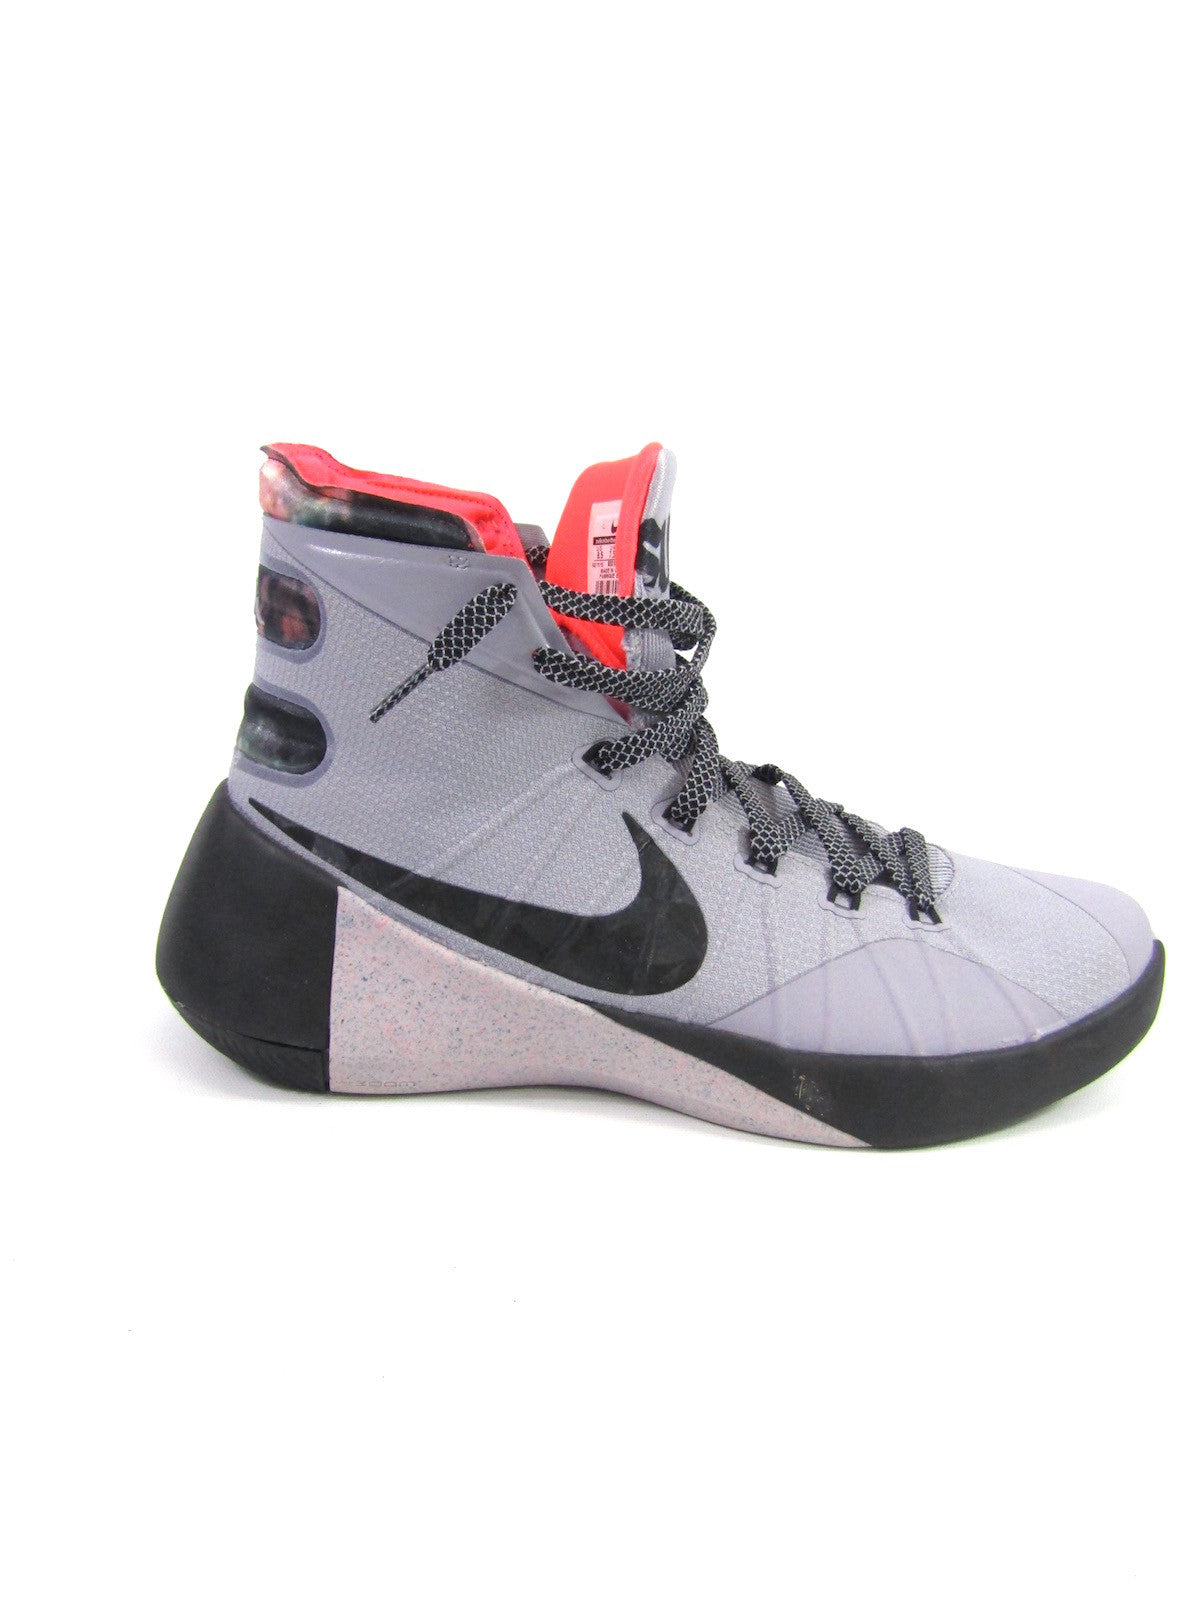 buy popular adae4 0e99f NIKE Men Hyperdunk 2015 Limited Provence Purple BLK City Paris Sneakers  Shoes 8.5. Nike Lorena s Worth